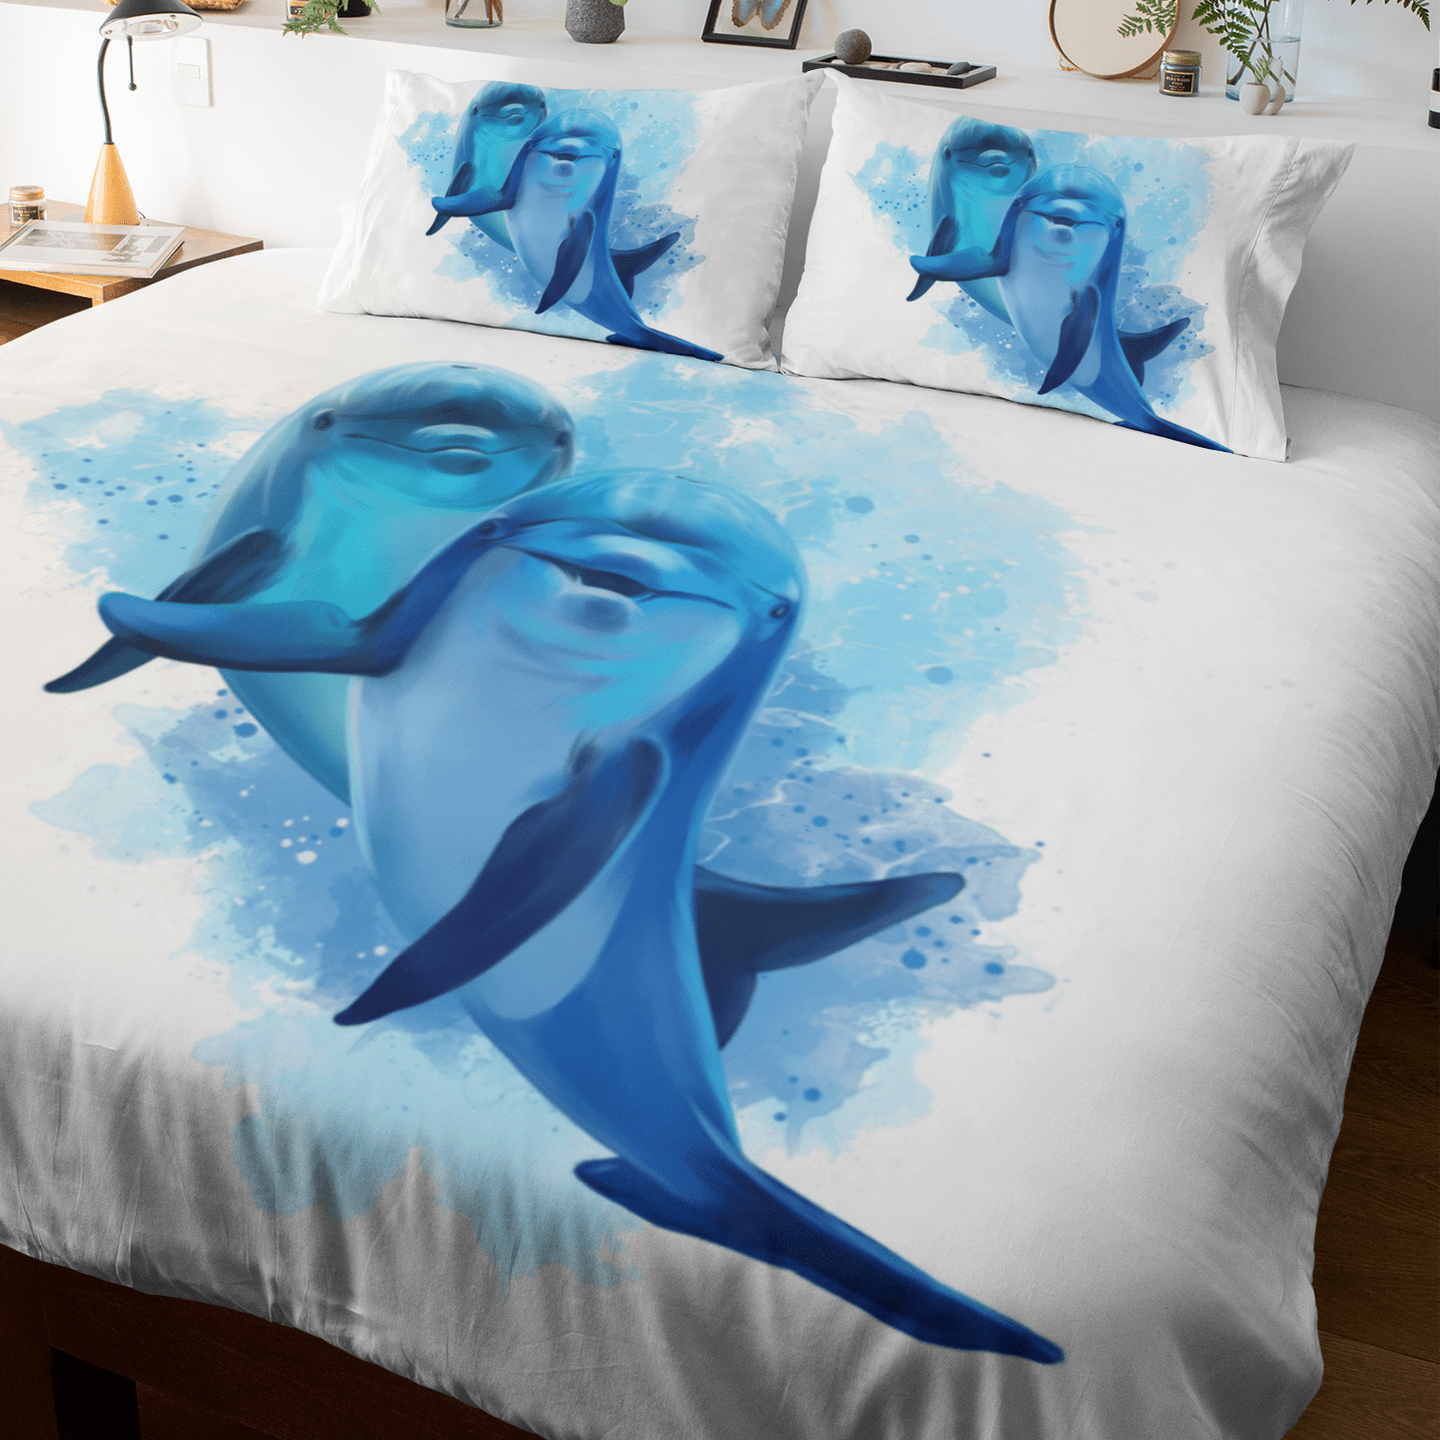 Dolphins Of The Sea Quilt Cover Set-Dolphins Of The Sea-Little Squiffy